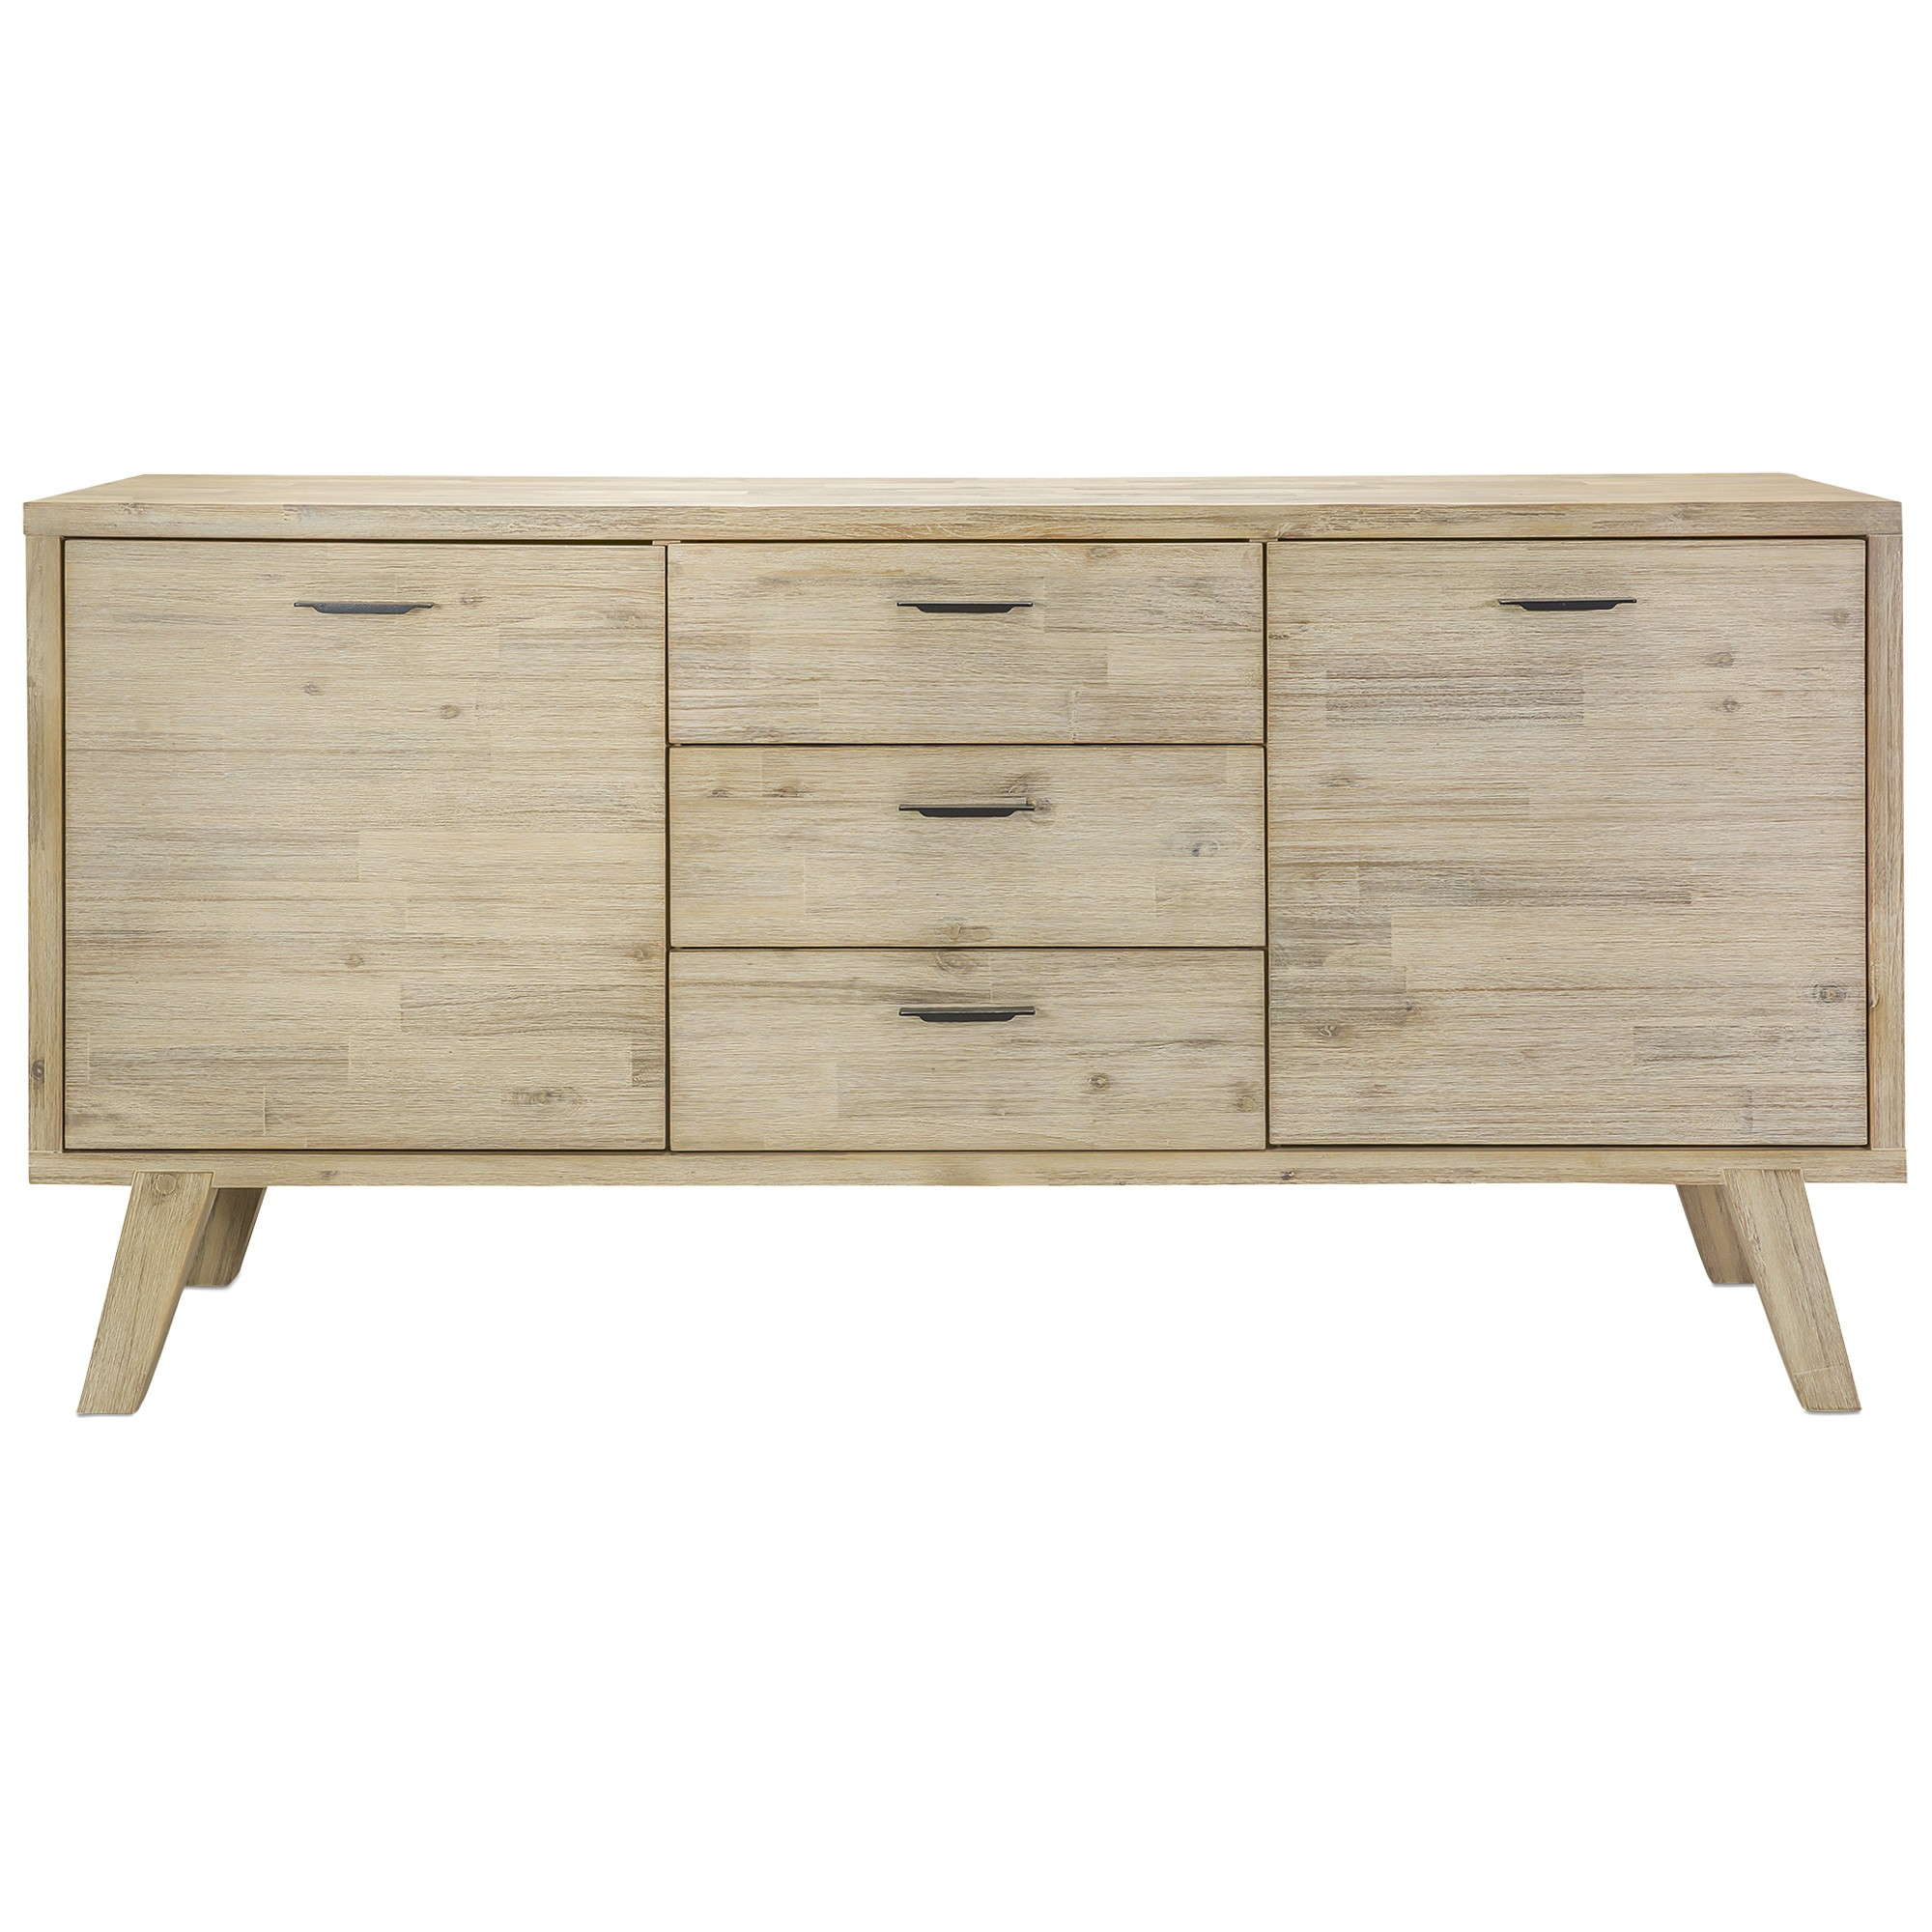 Sundara Acacia Timber 2 Door 3 Drawer Buffet Table, 160cm